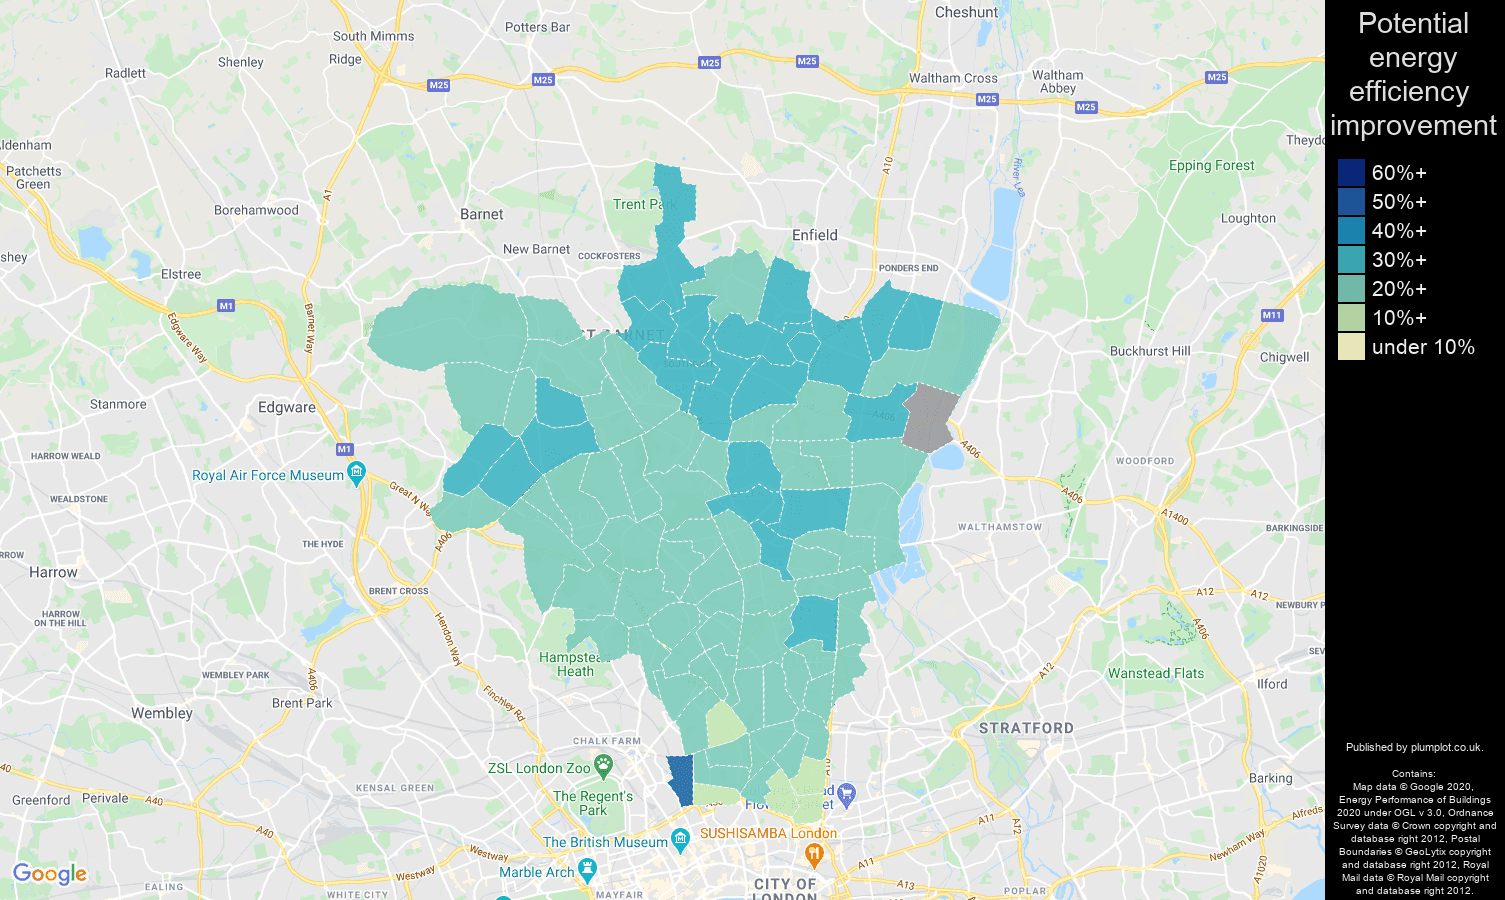 North London map of potential energy efficiency improvement of houses